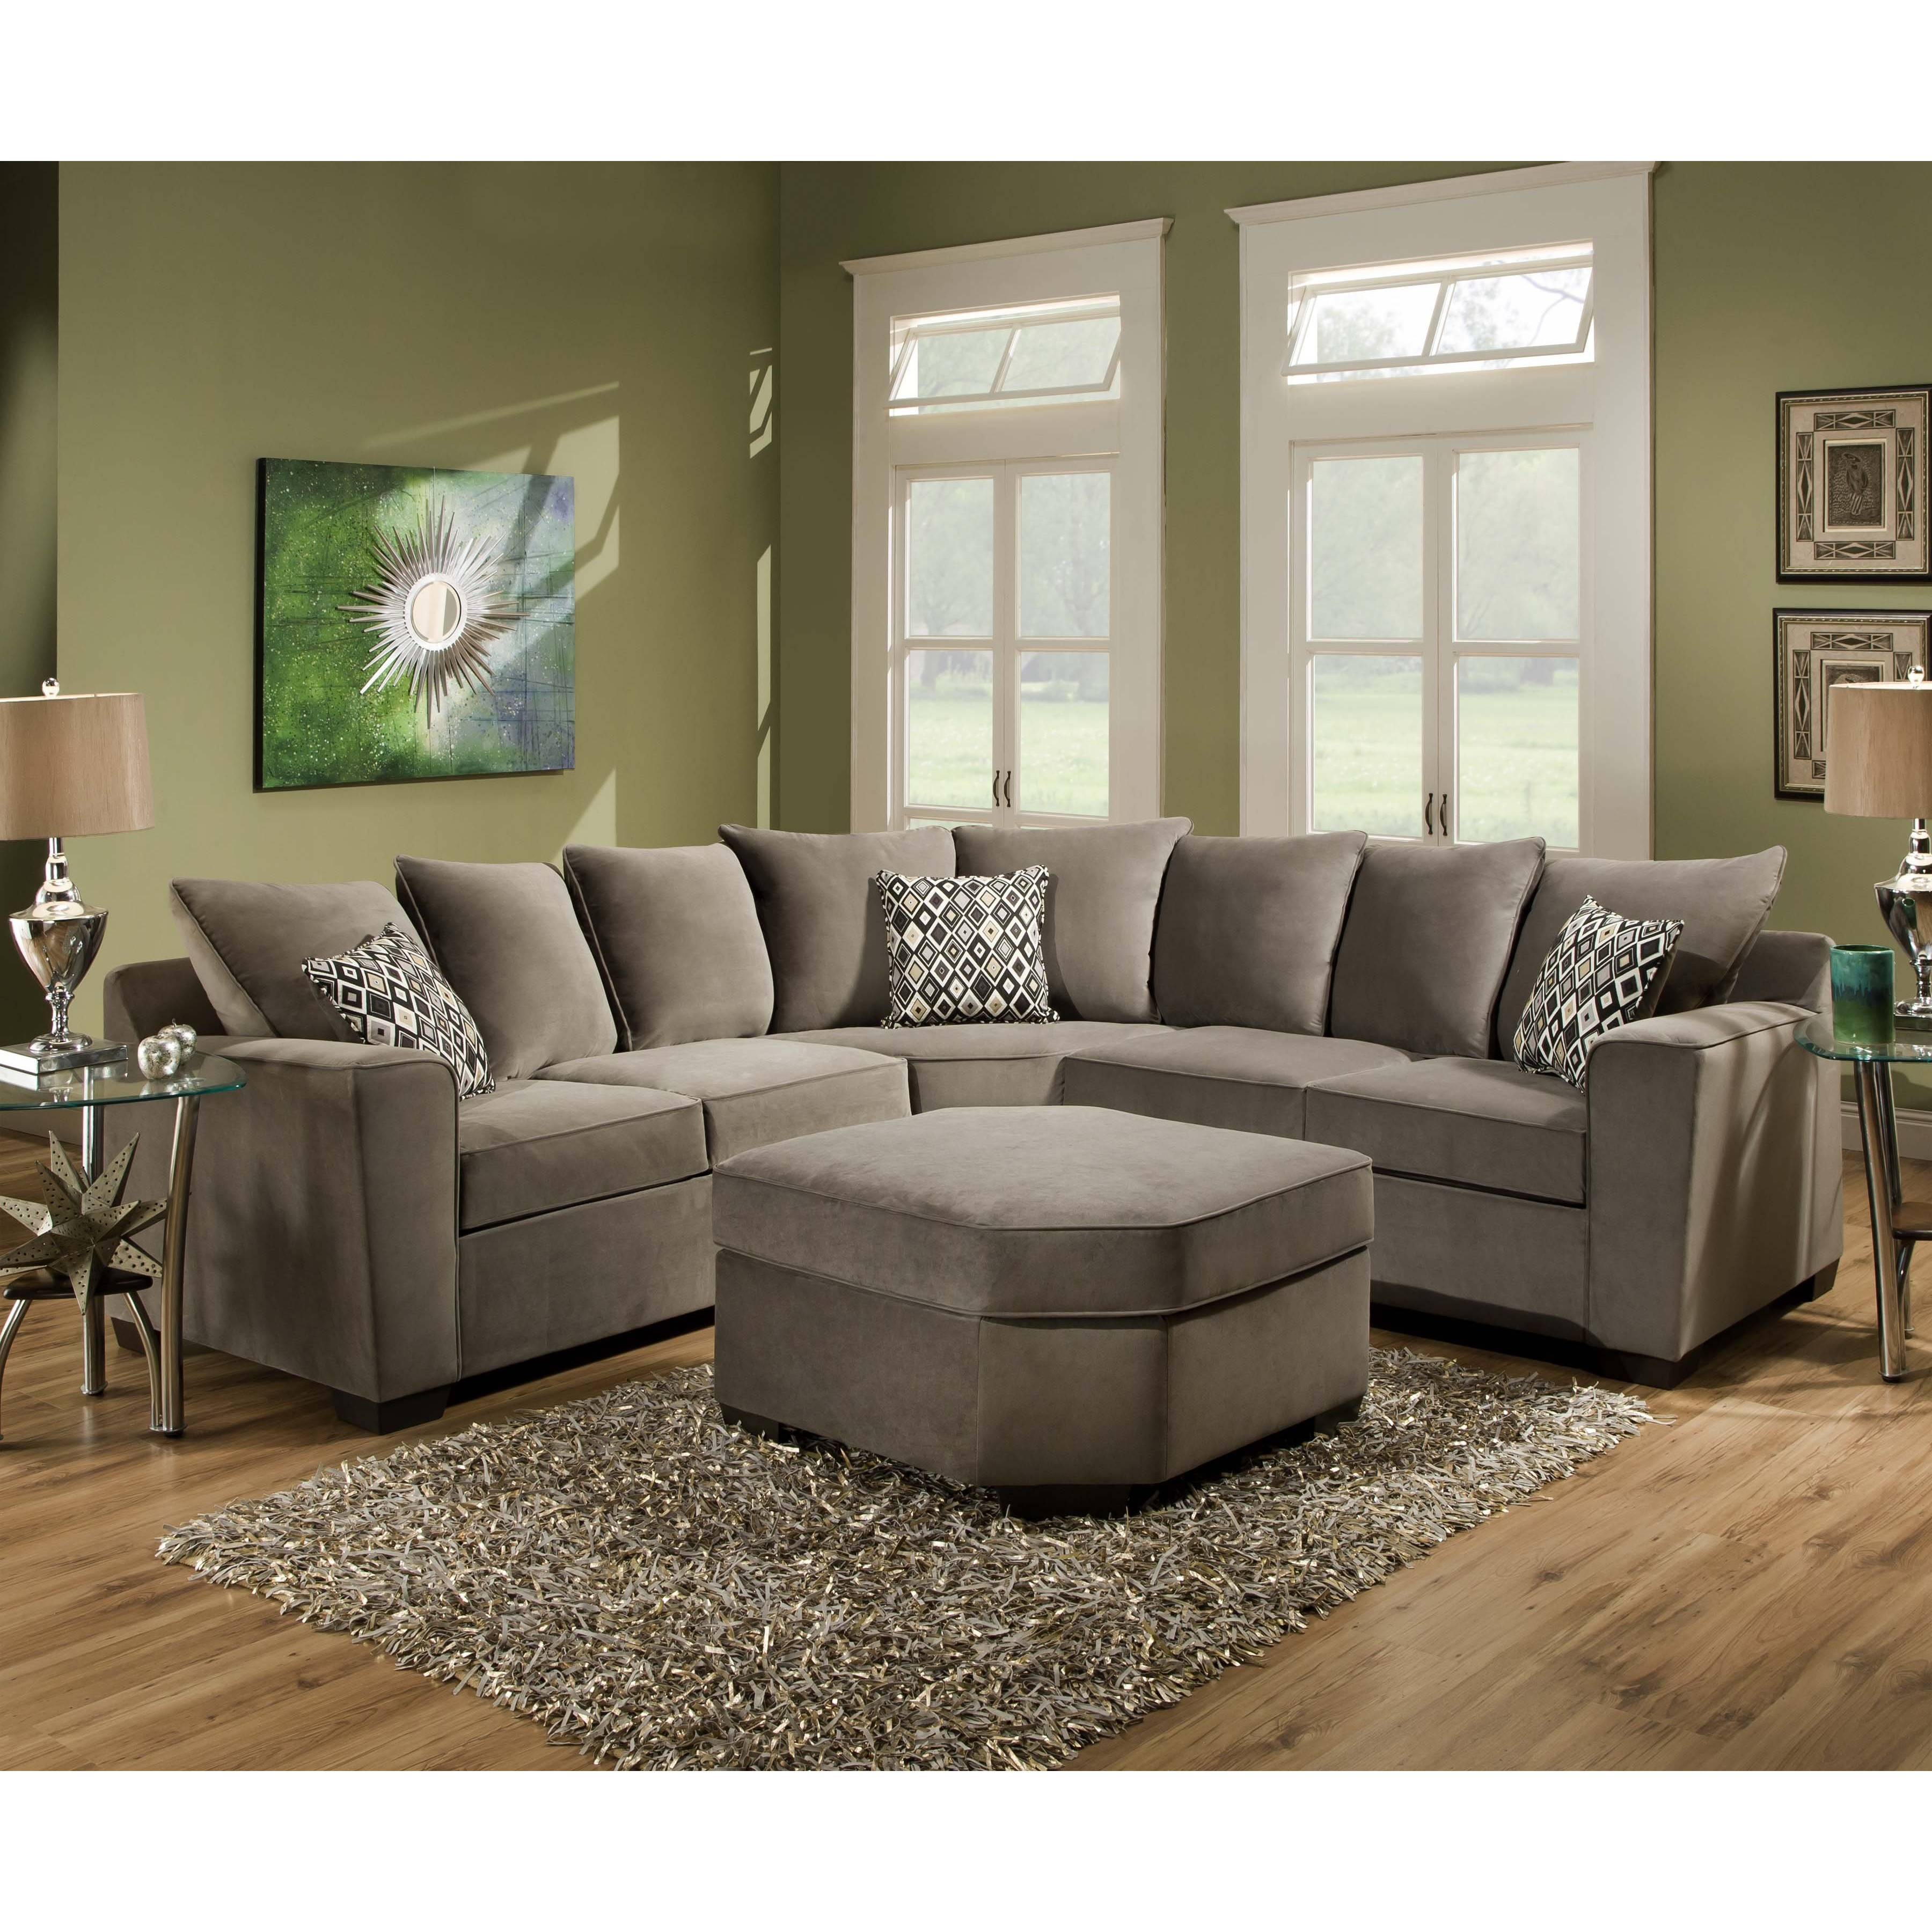 Epic Cheap U Shaped Sectional Sofas 35 About Remodel Backless With Backless Sectional Sofa (View 6 of 15)